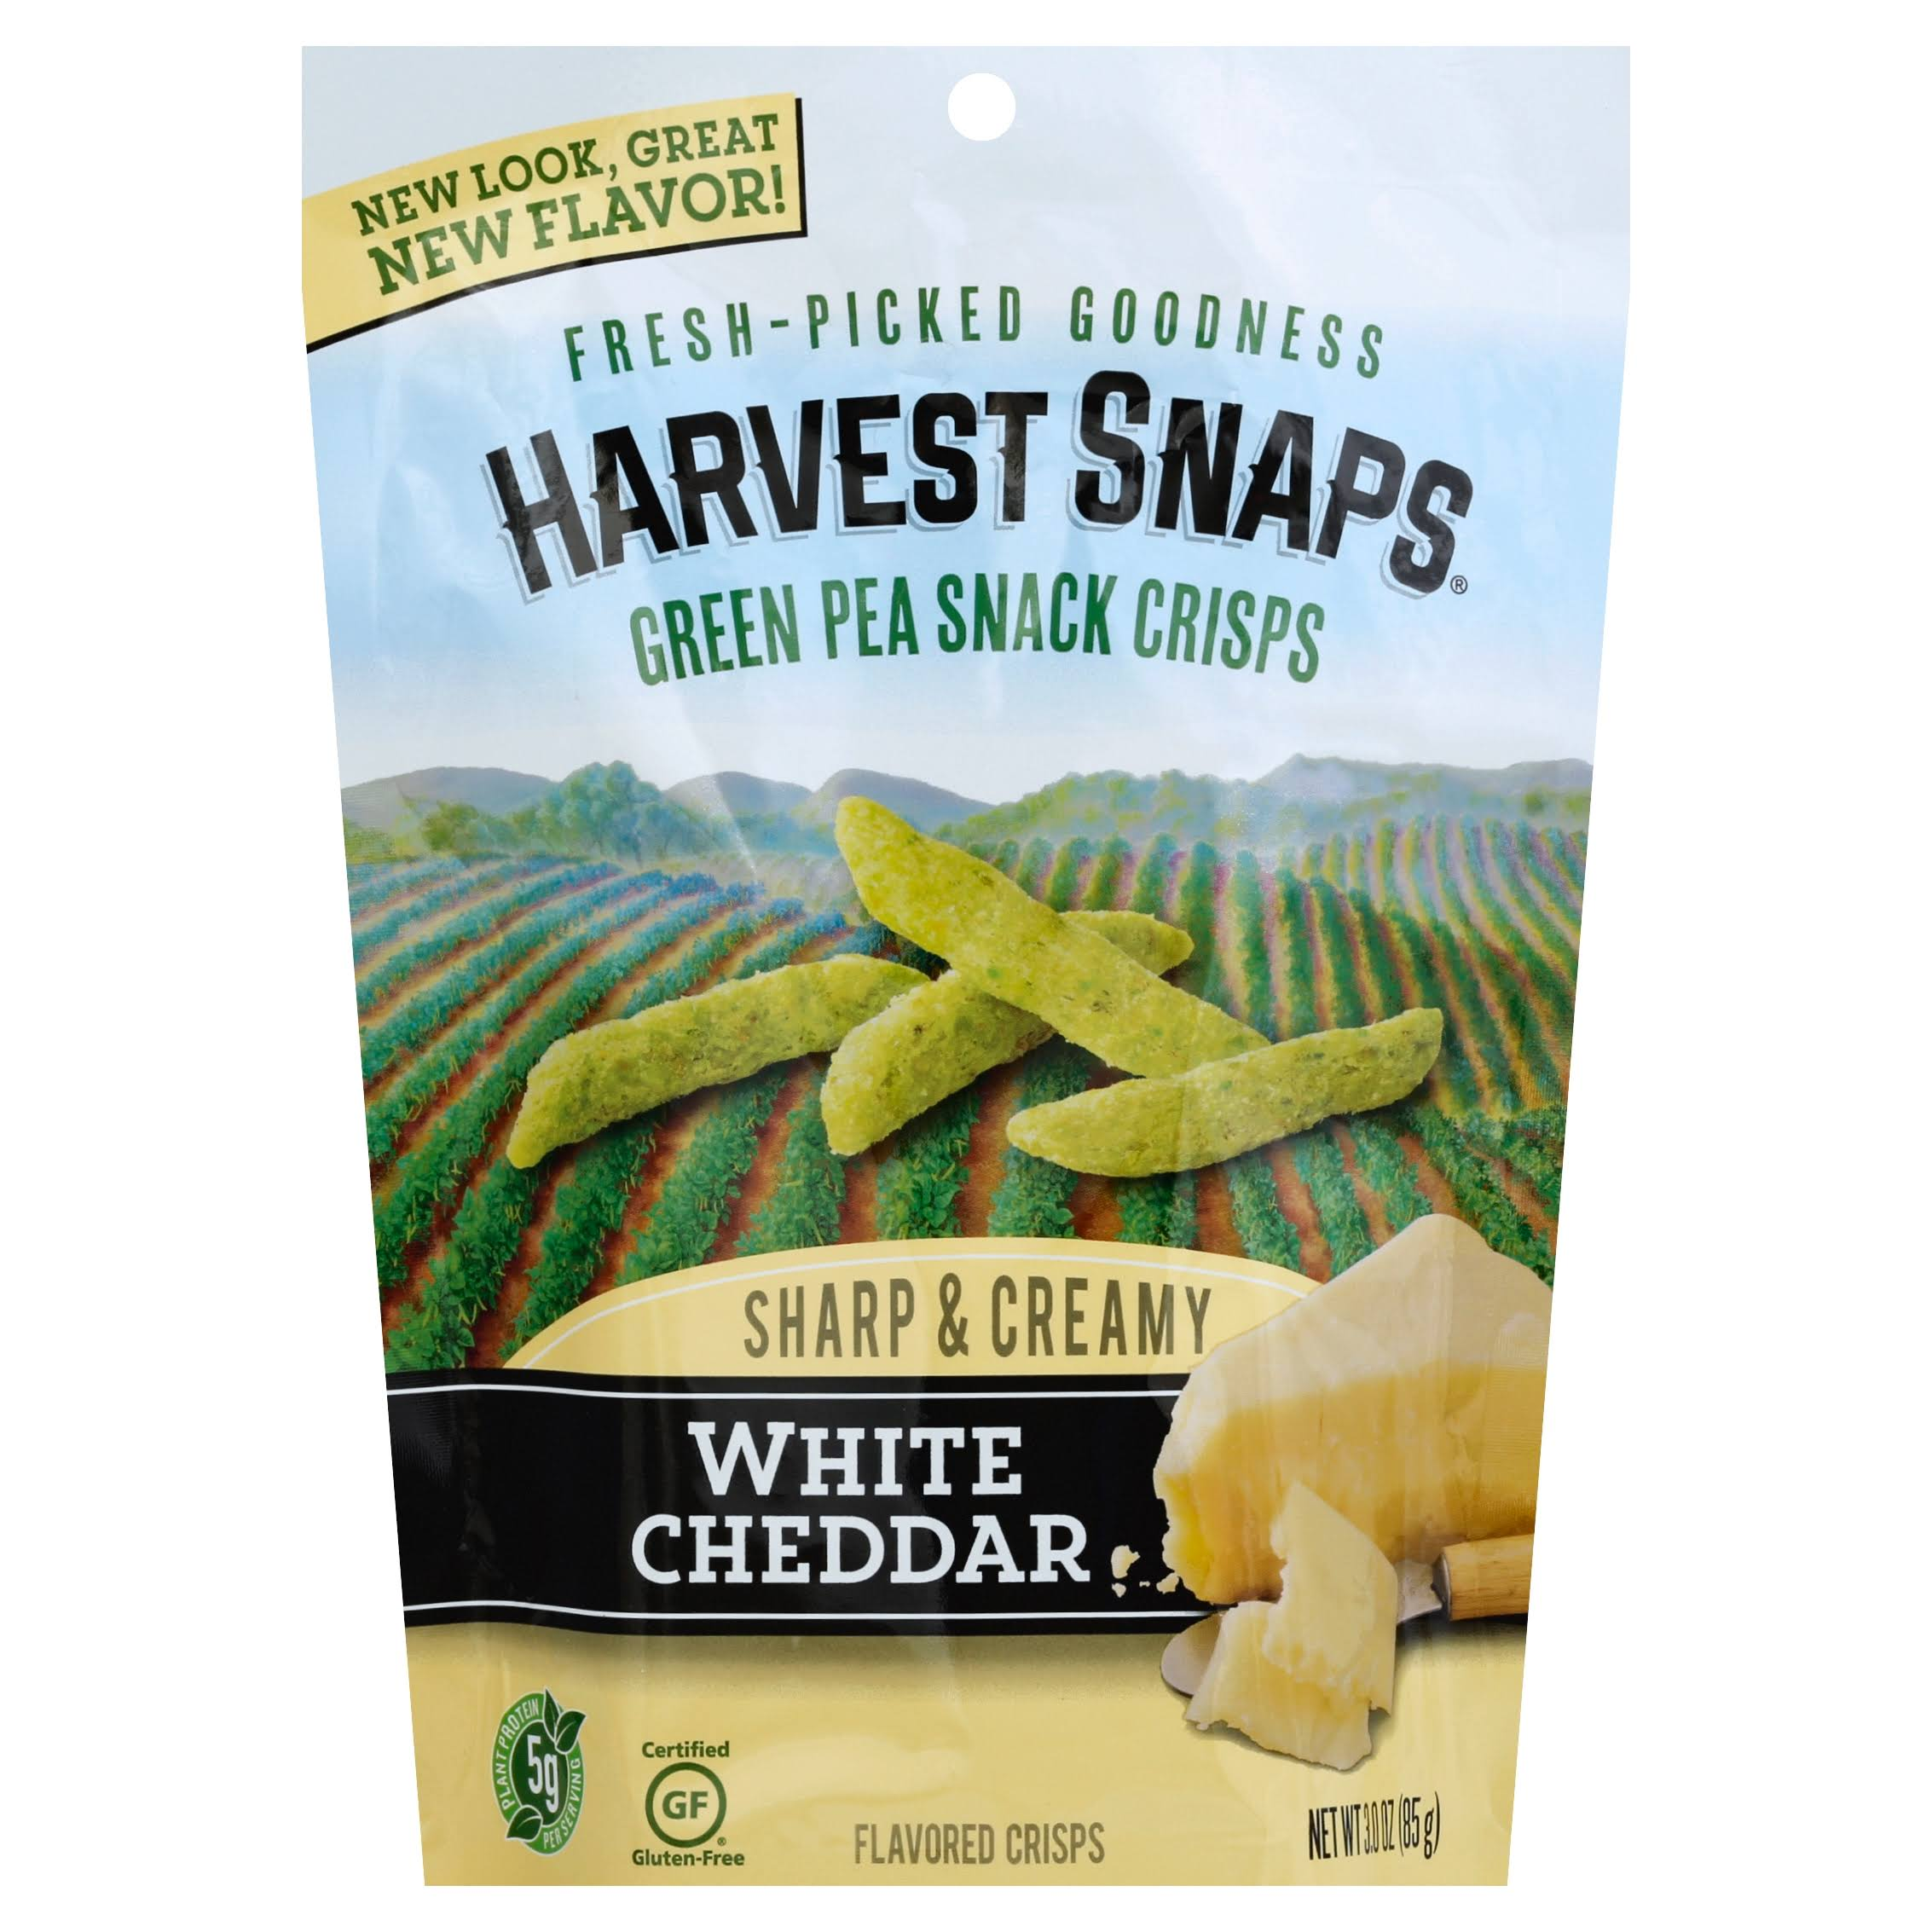 Green Pea Snack Crisps - White Cheddar, 3 OZ